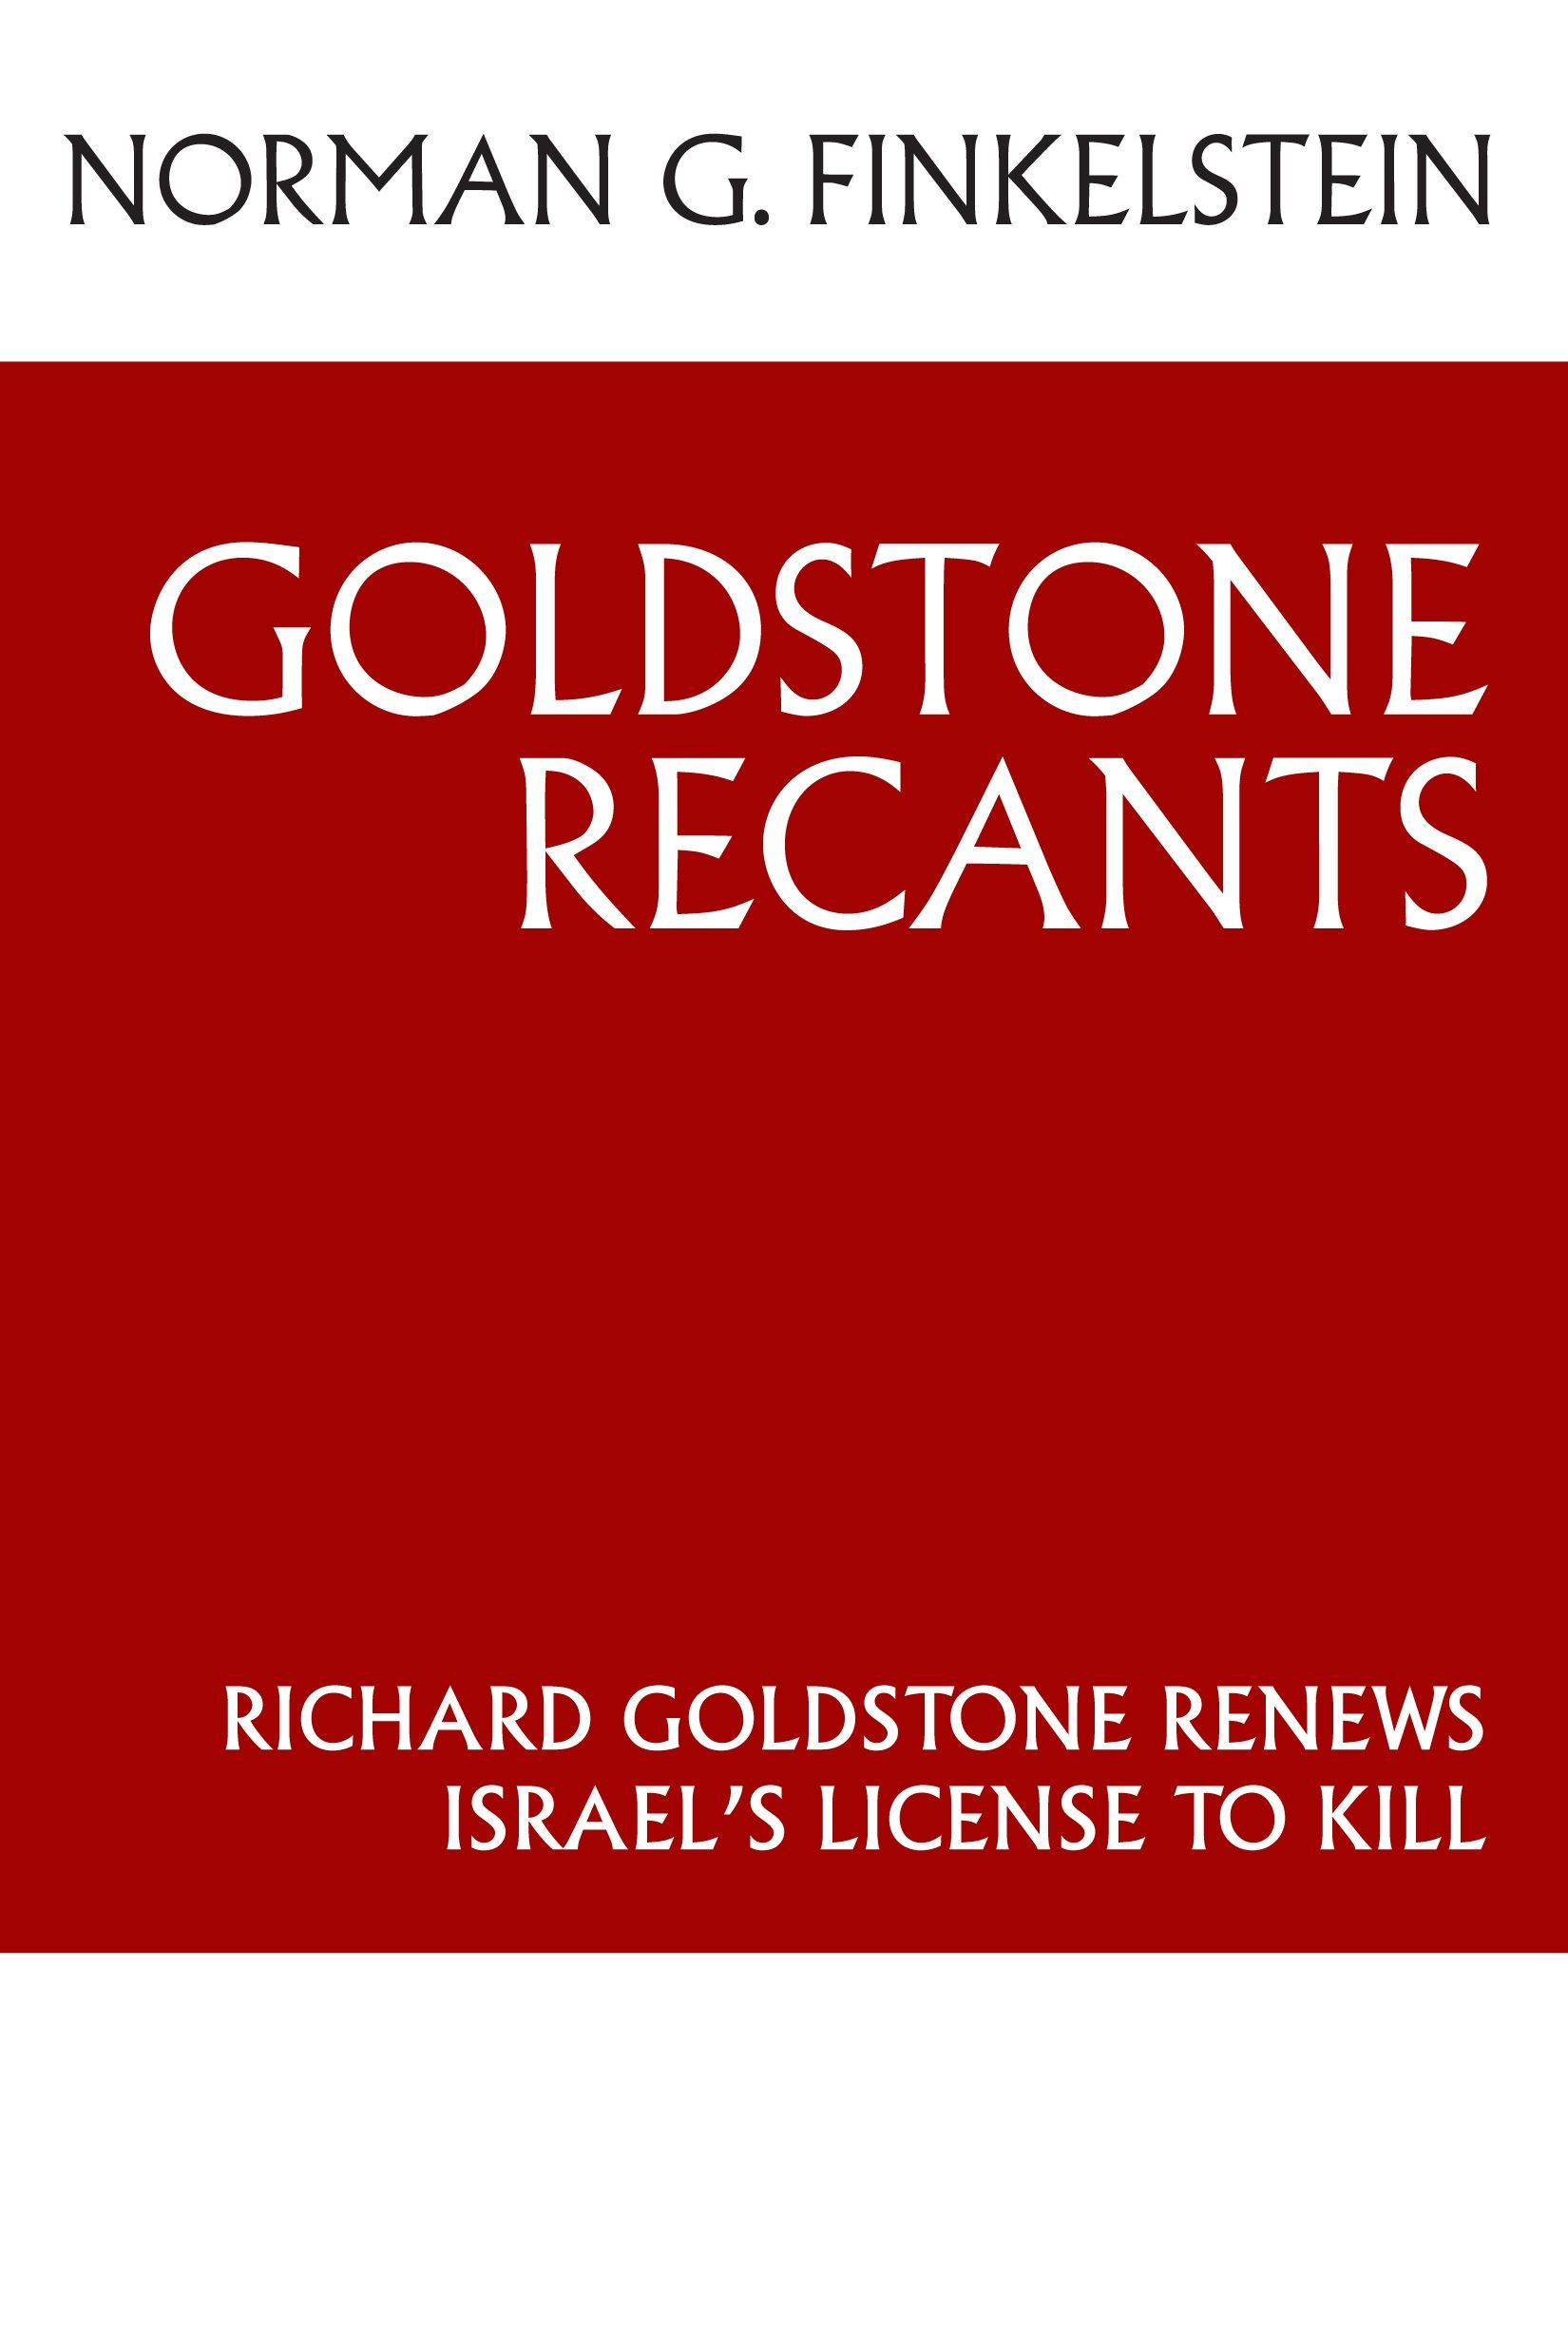 Goldstone Recants: Richard Goldstone Renews Israels License to Kill